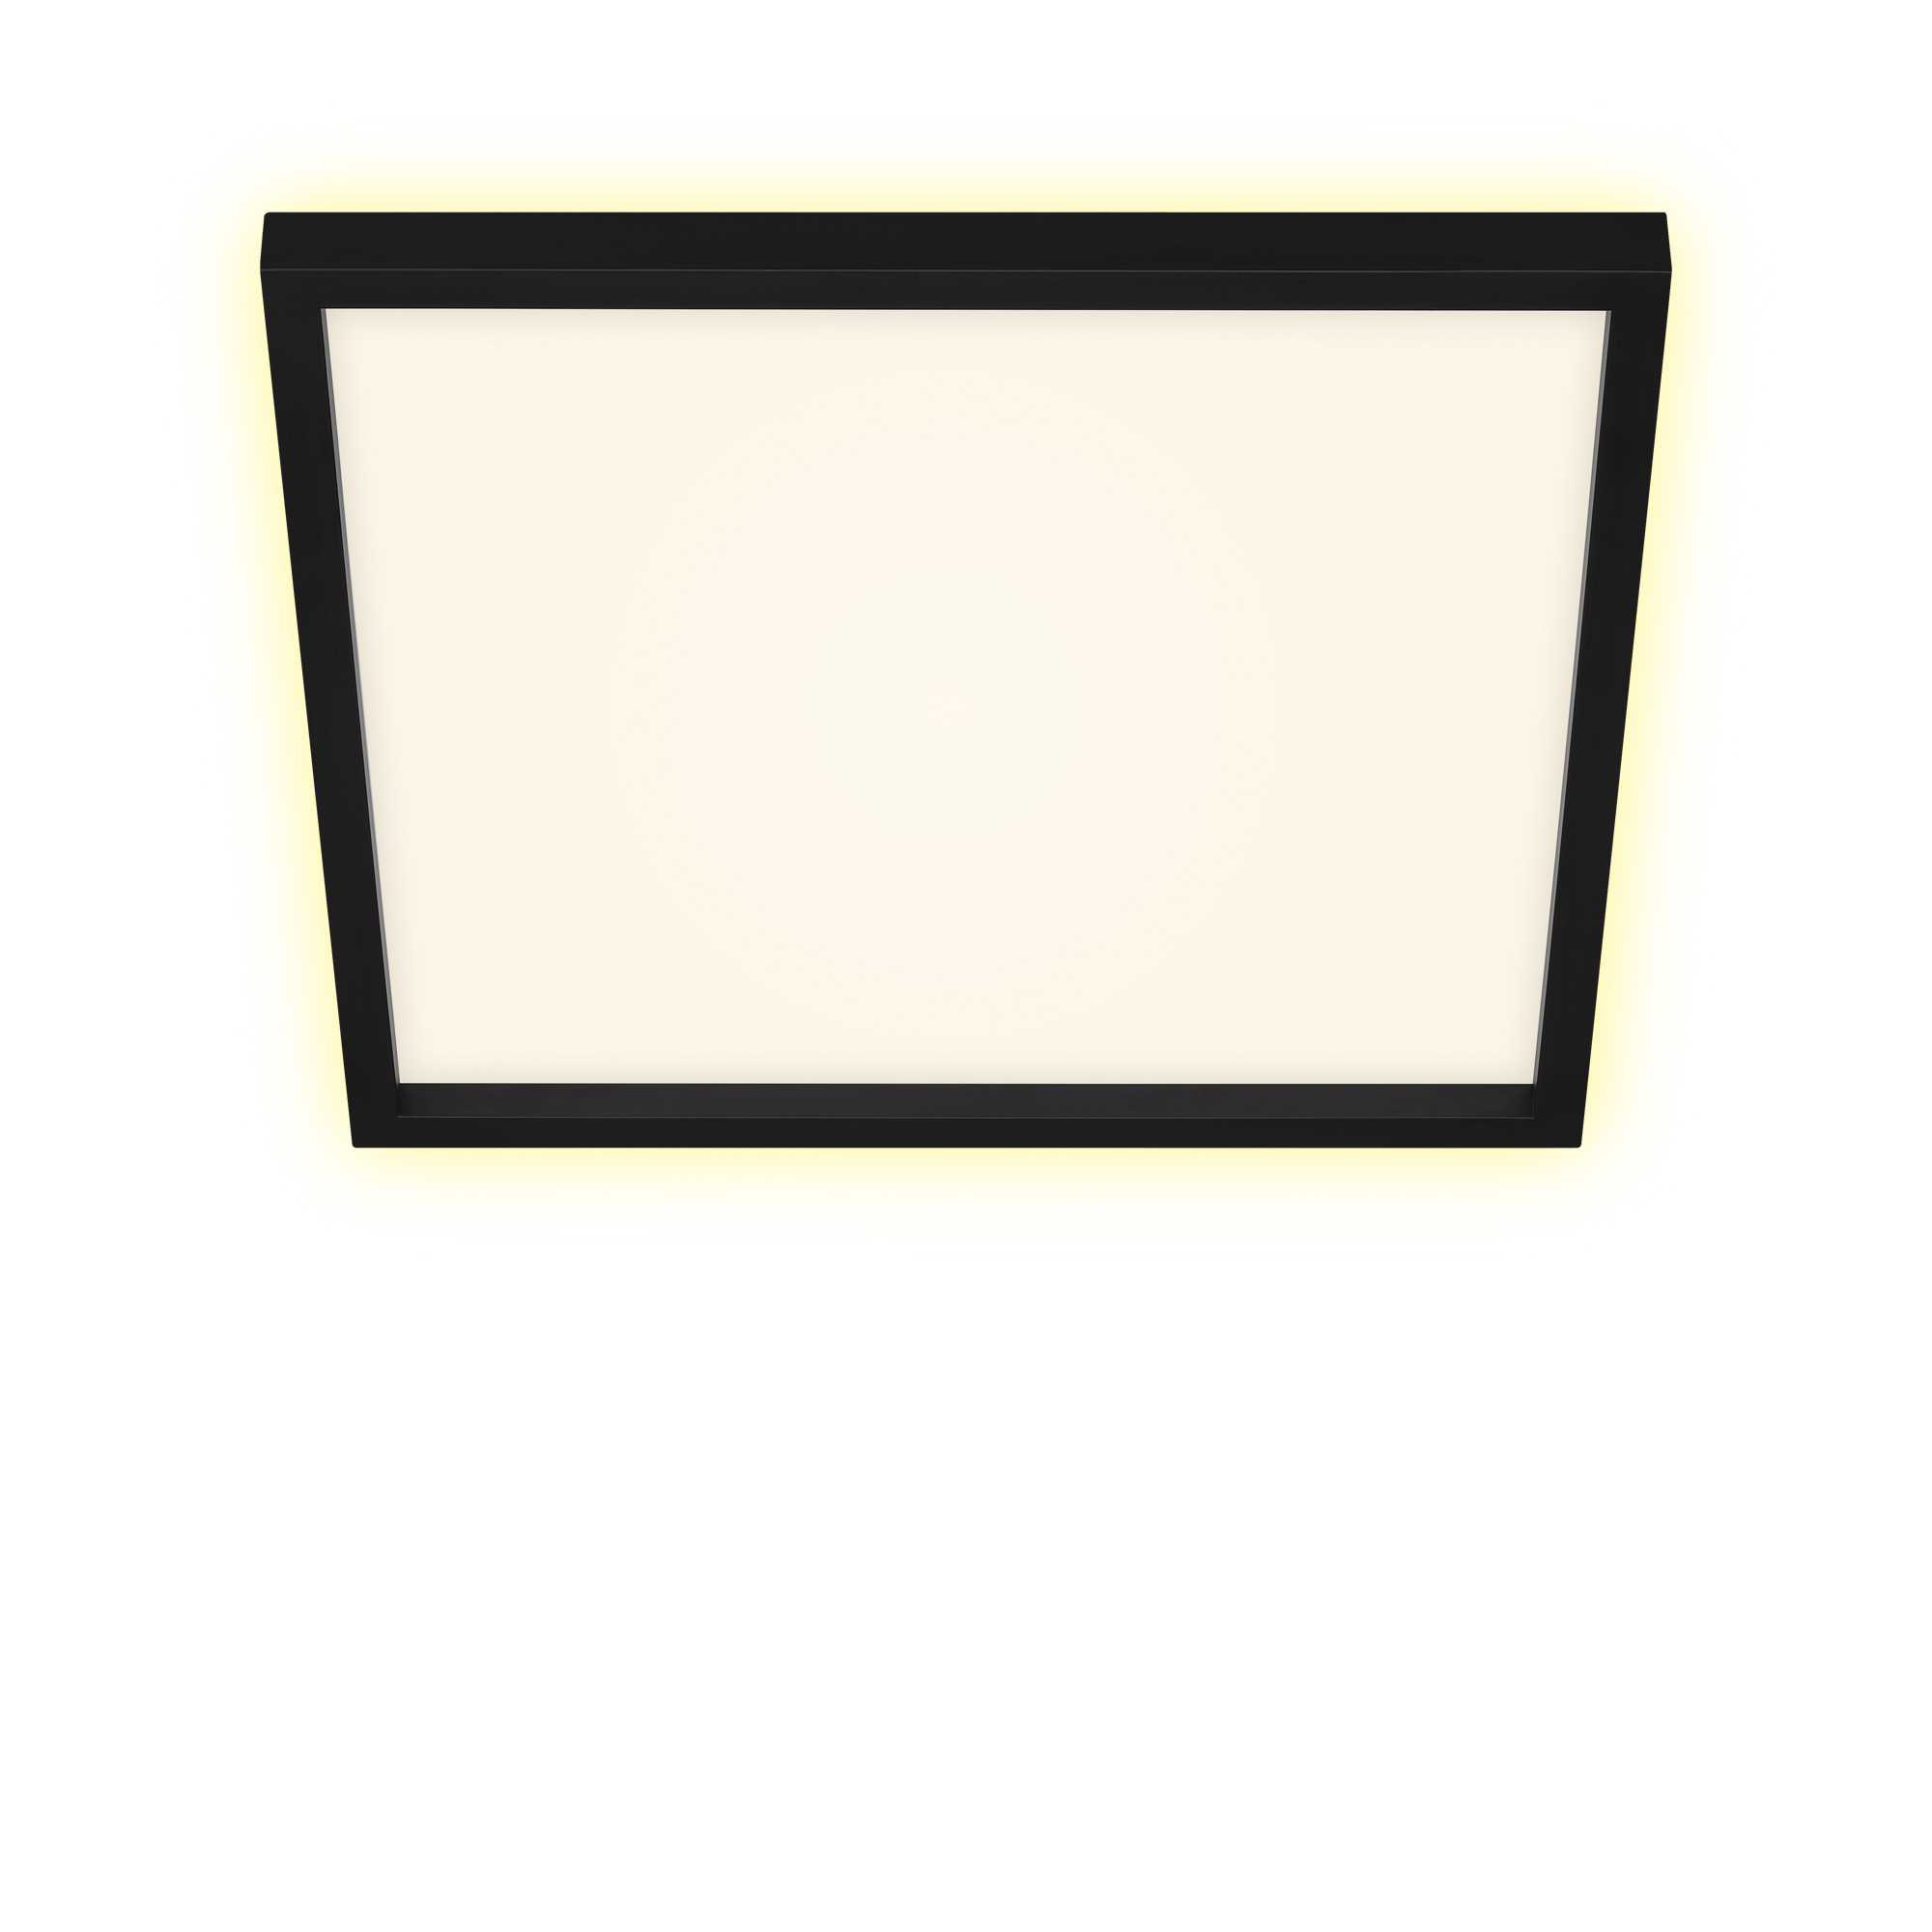 LED Panel, 42,2 cm, 3000 LUMEN, 22 WATT, Schwarz